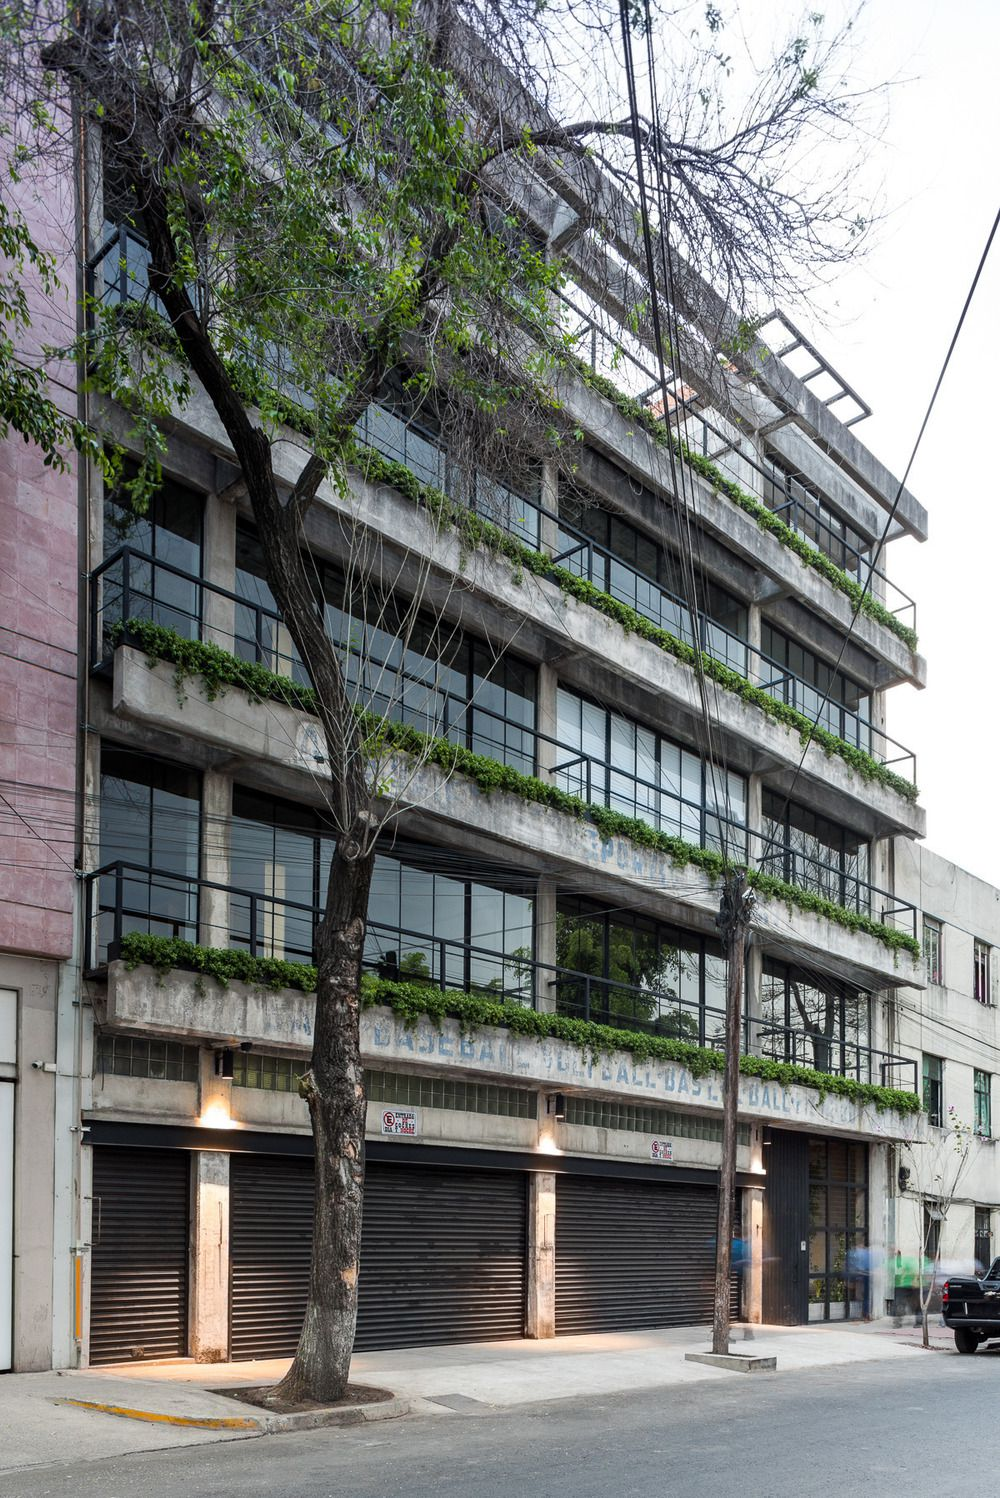 DR. ATL 285 BUILDING IN MEXICO CITY, BY ALFONSO QUIÑONES, OF BAAQ´